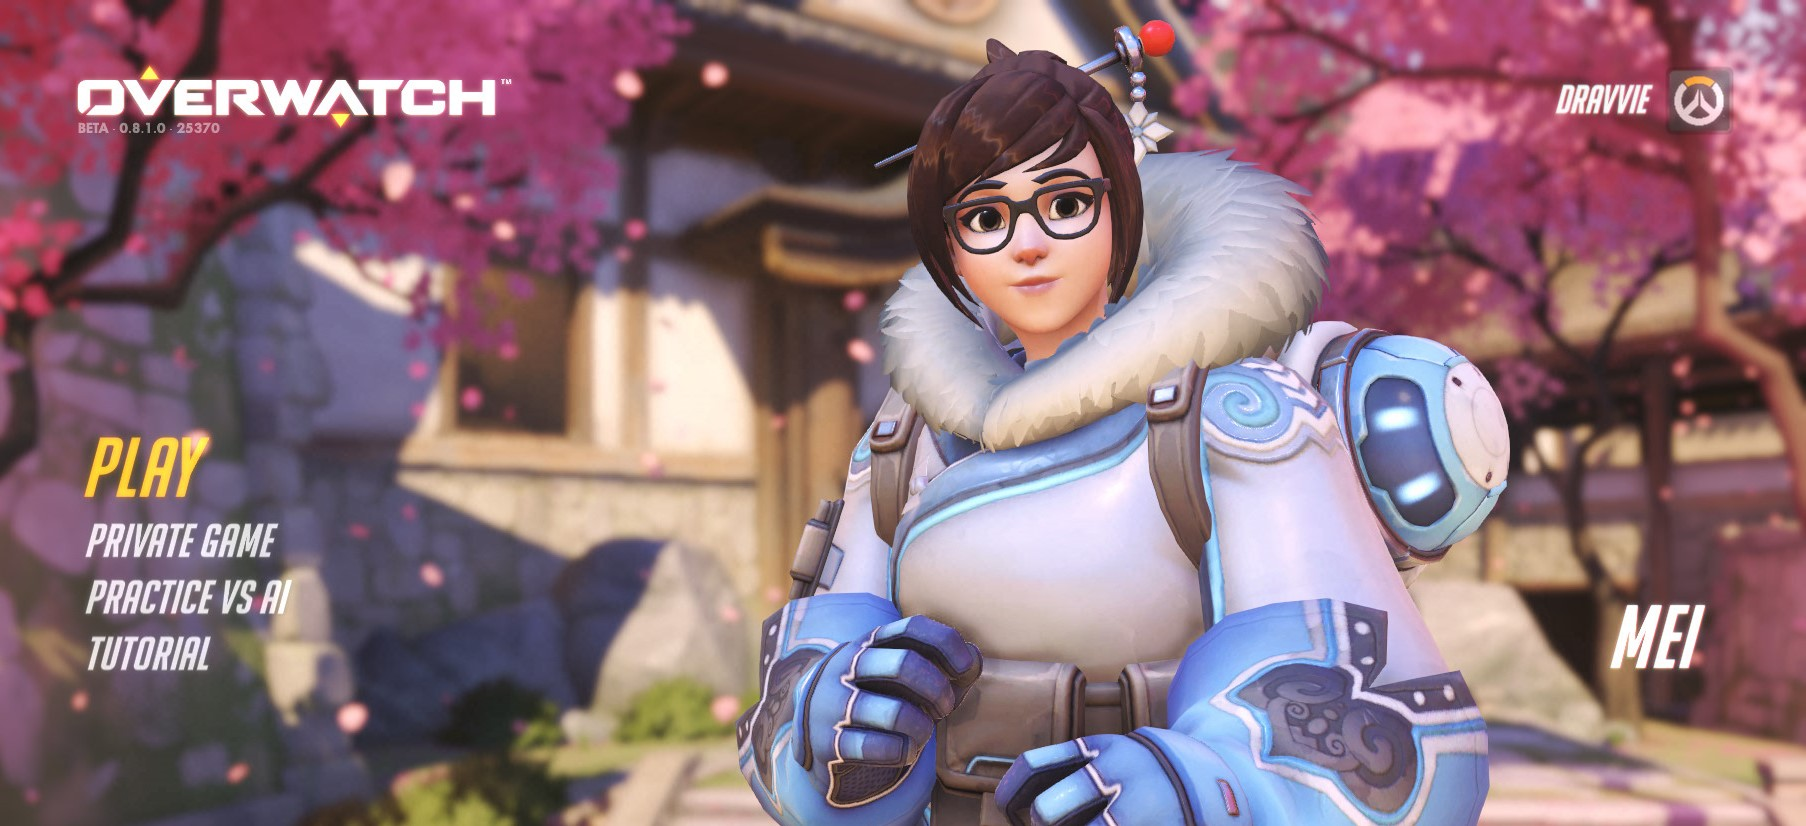 Overwatch All Girl Characters on People Of Different Personalities